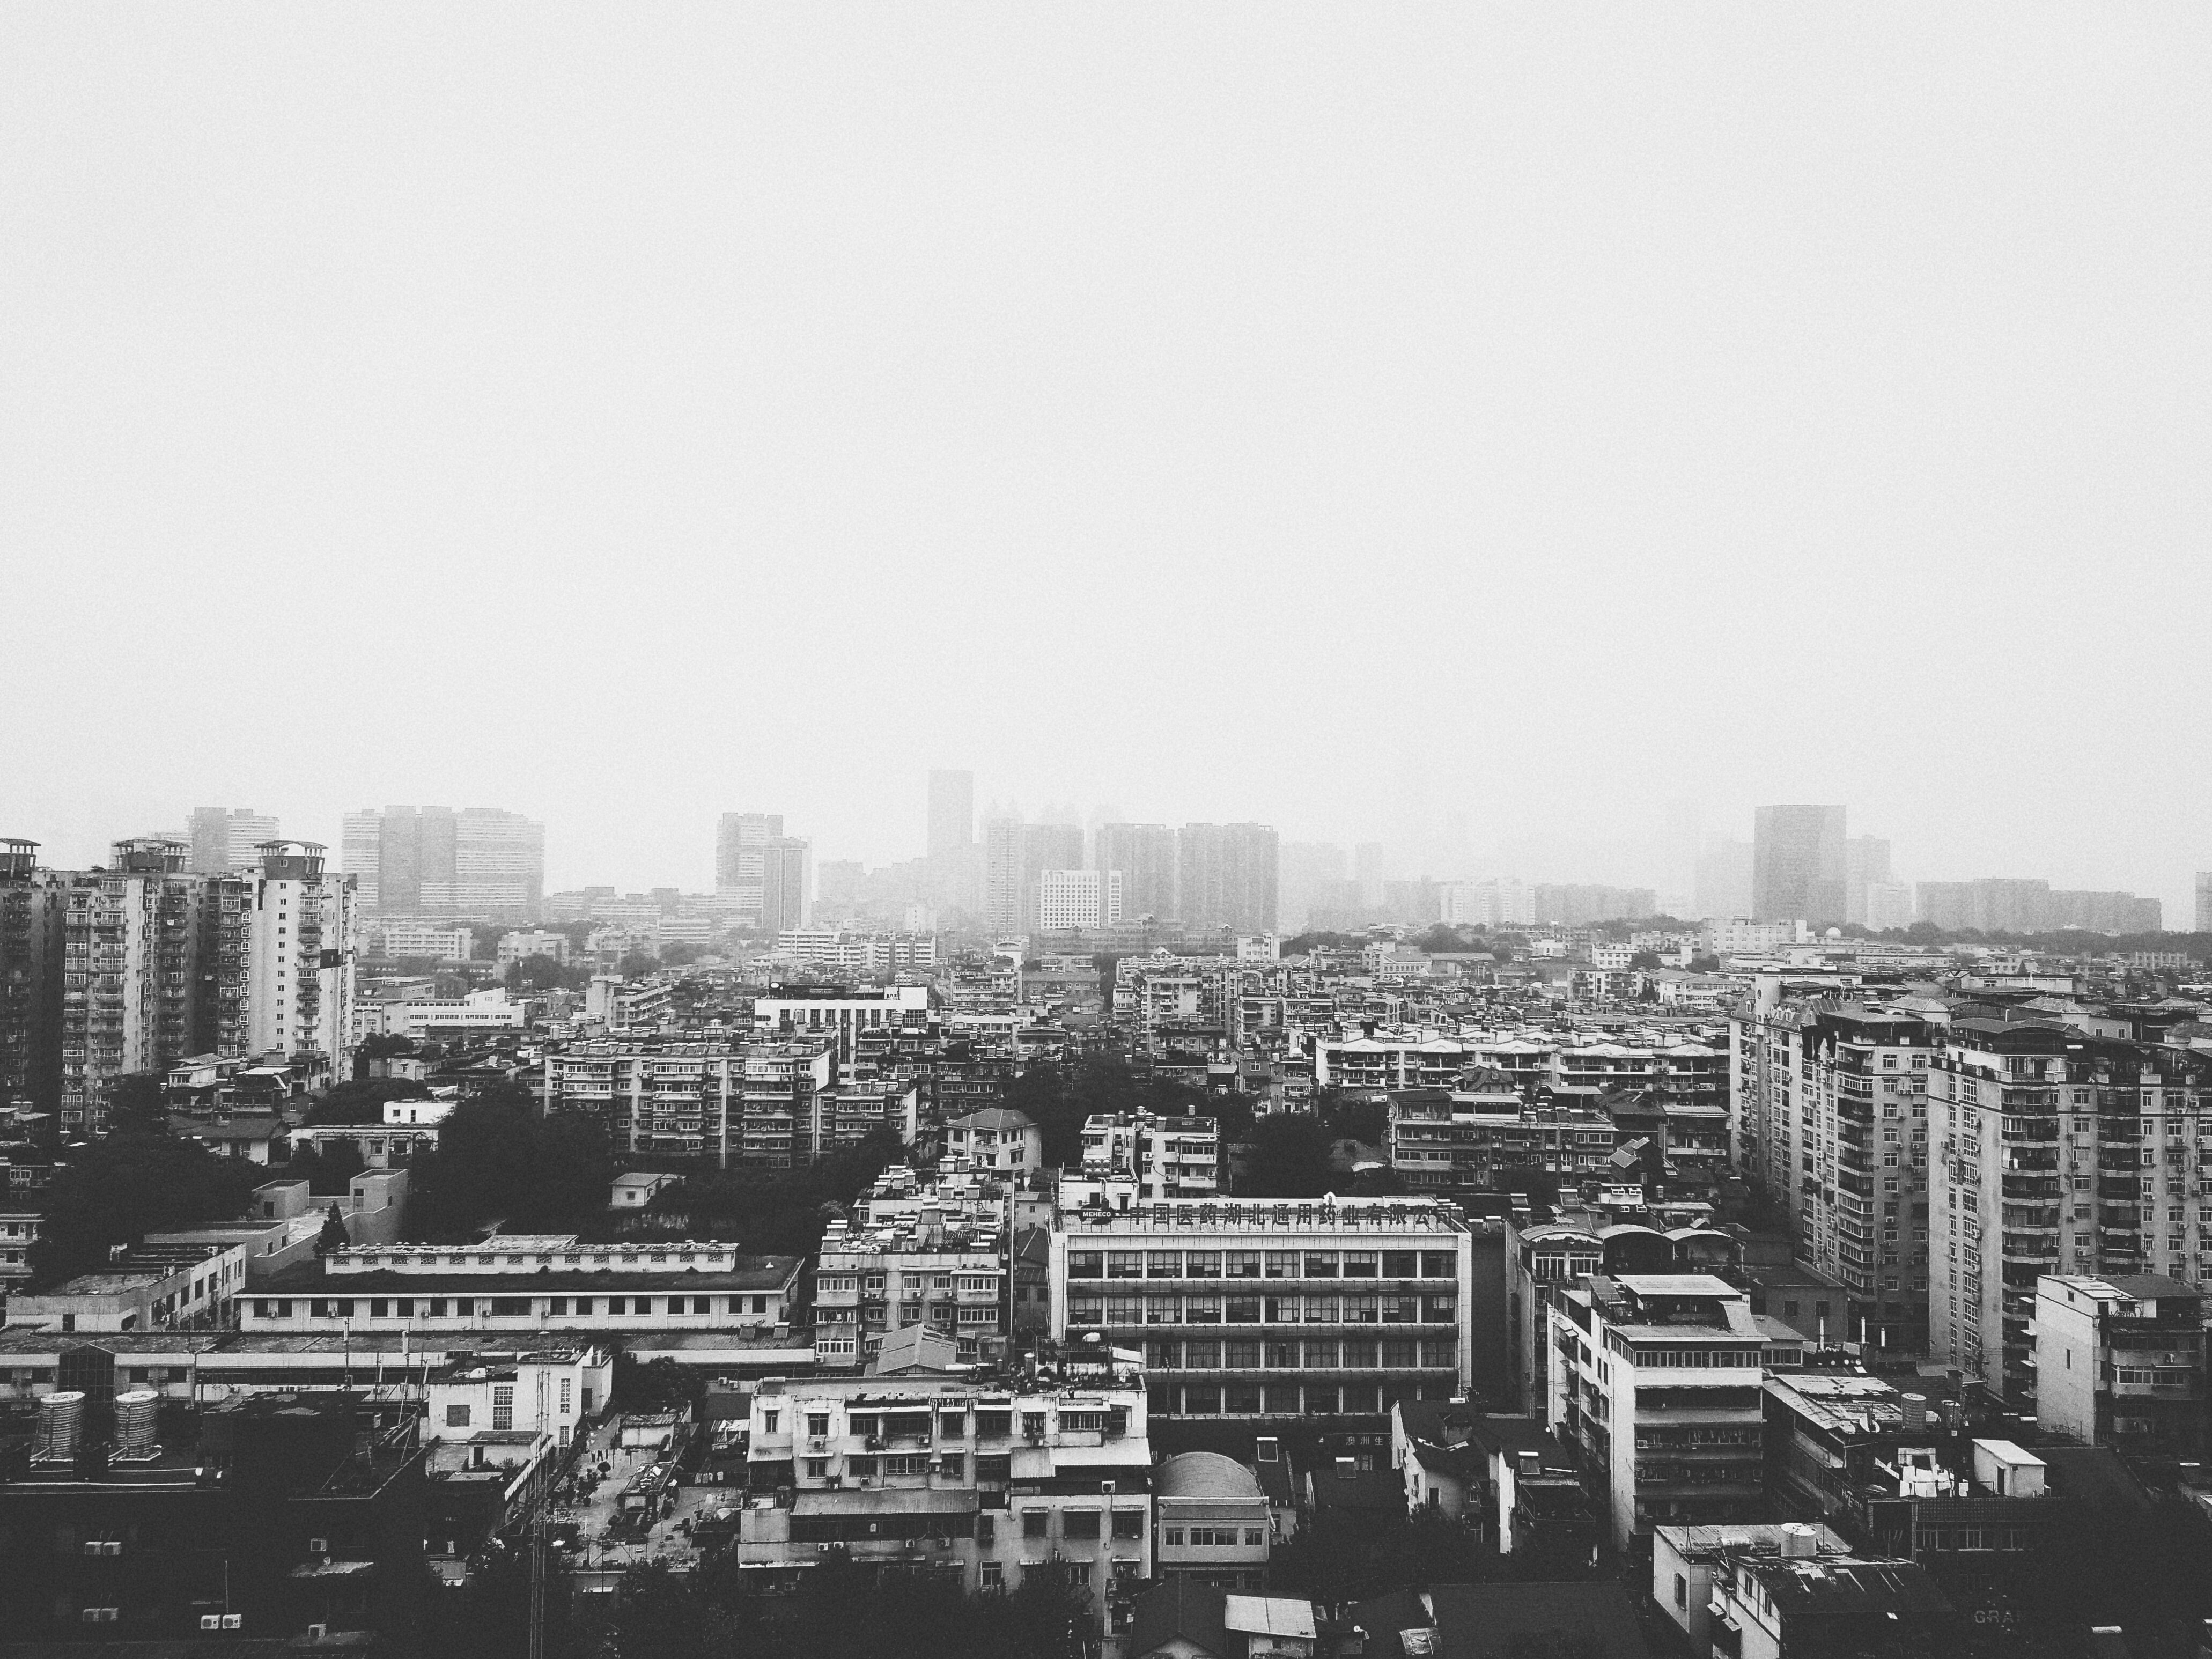 gray scale photo of buildings